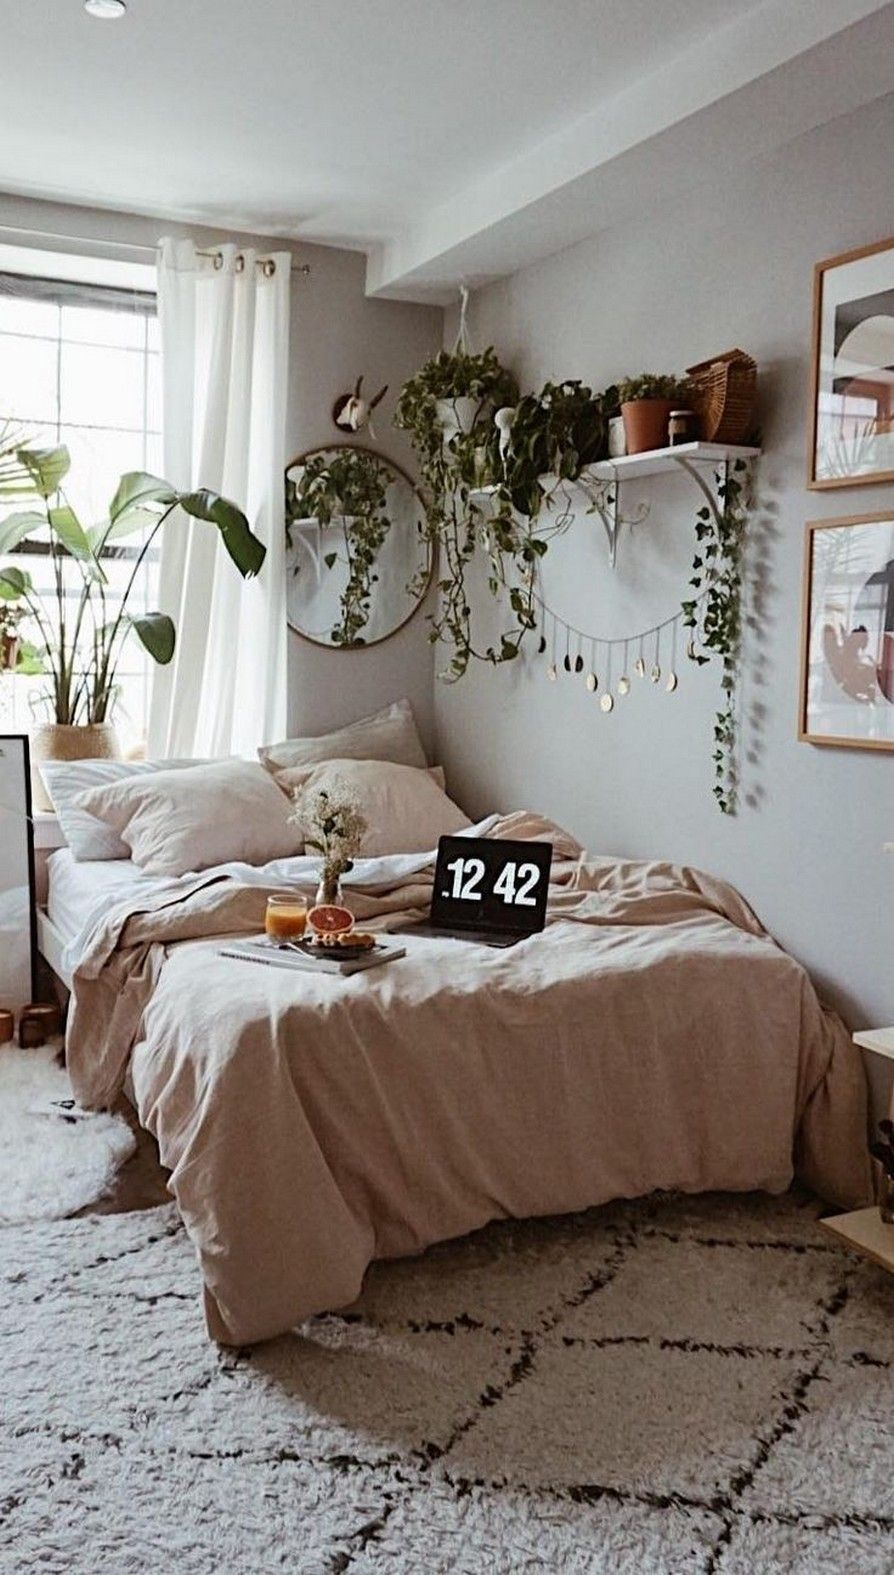 34+ discover ideas about bedroom plants decor 8 « Home Decor